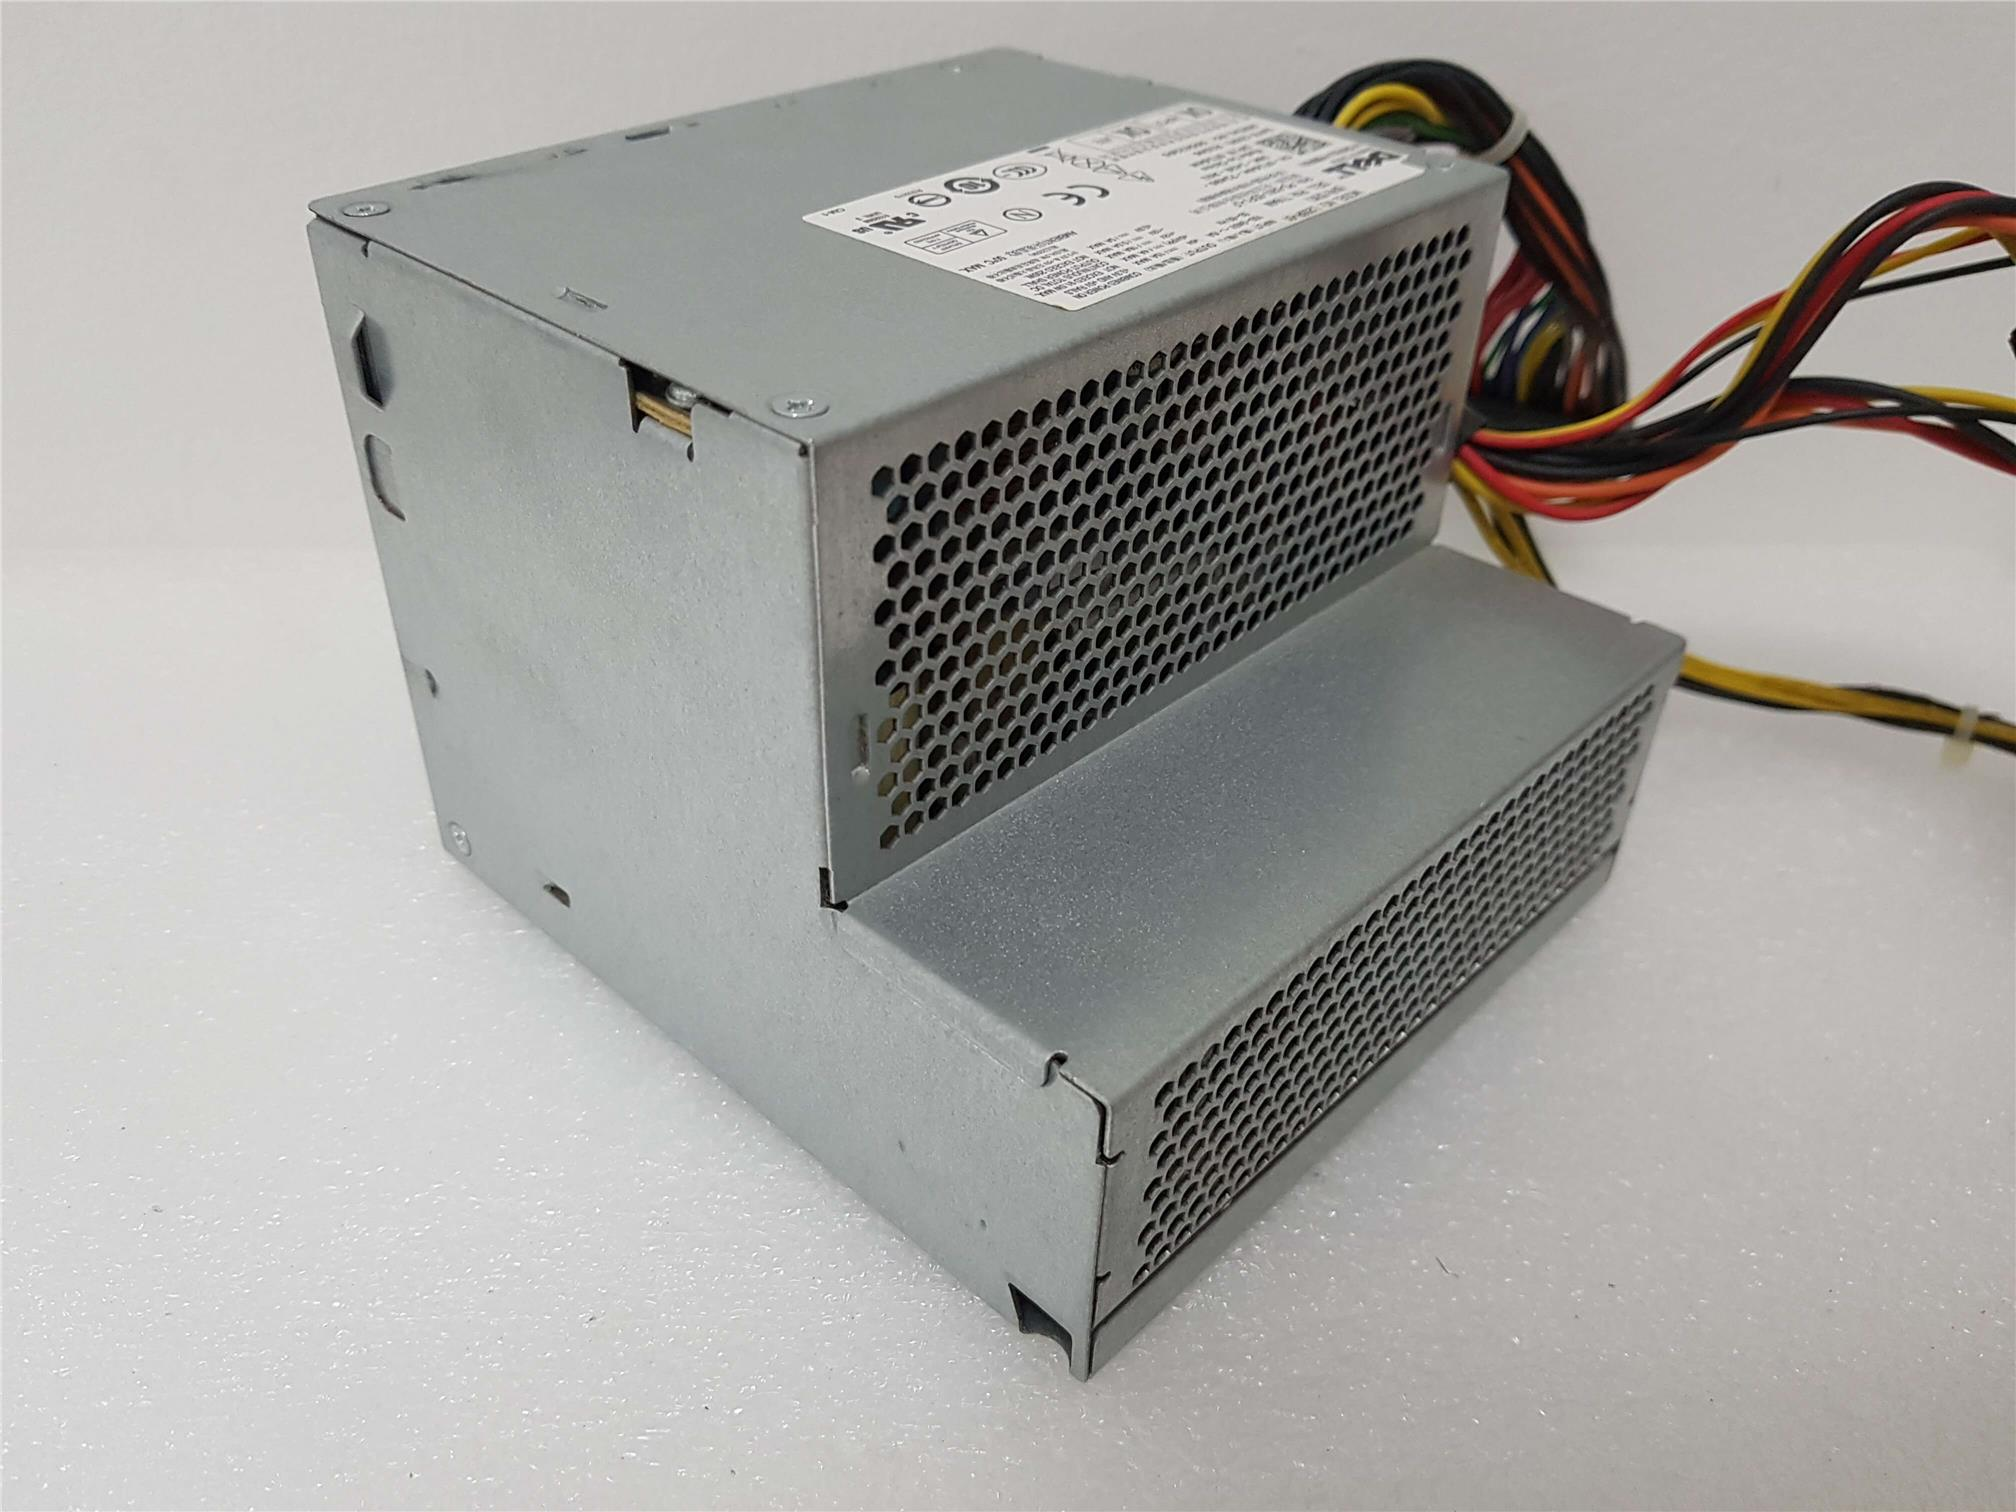 Dell Optiplex 780 DT 255W Power Supply PSU WU123 DPS-255CB A (USED)